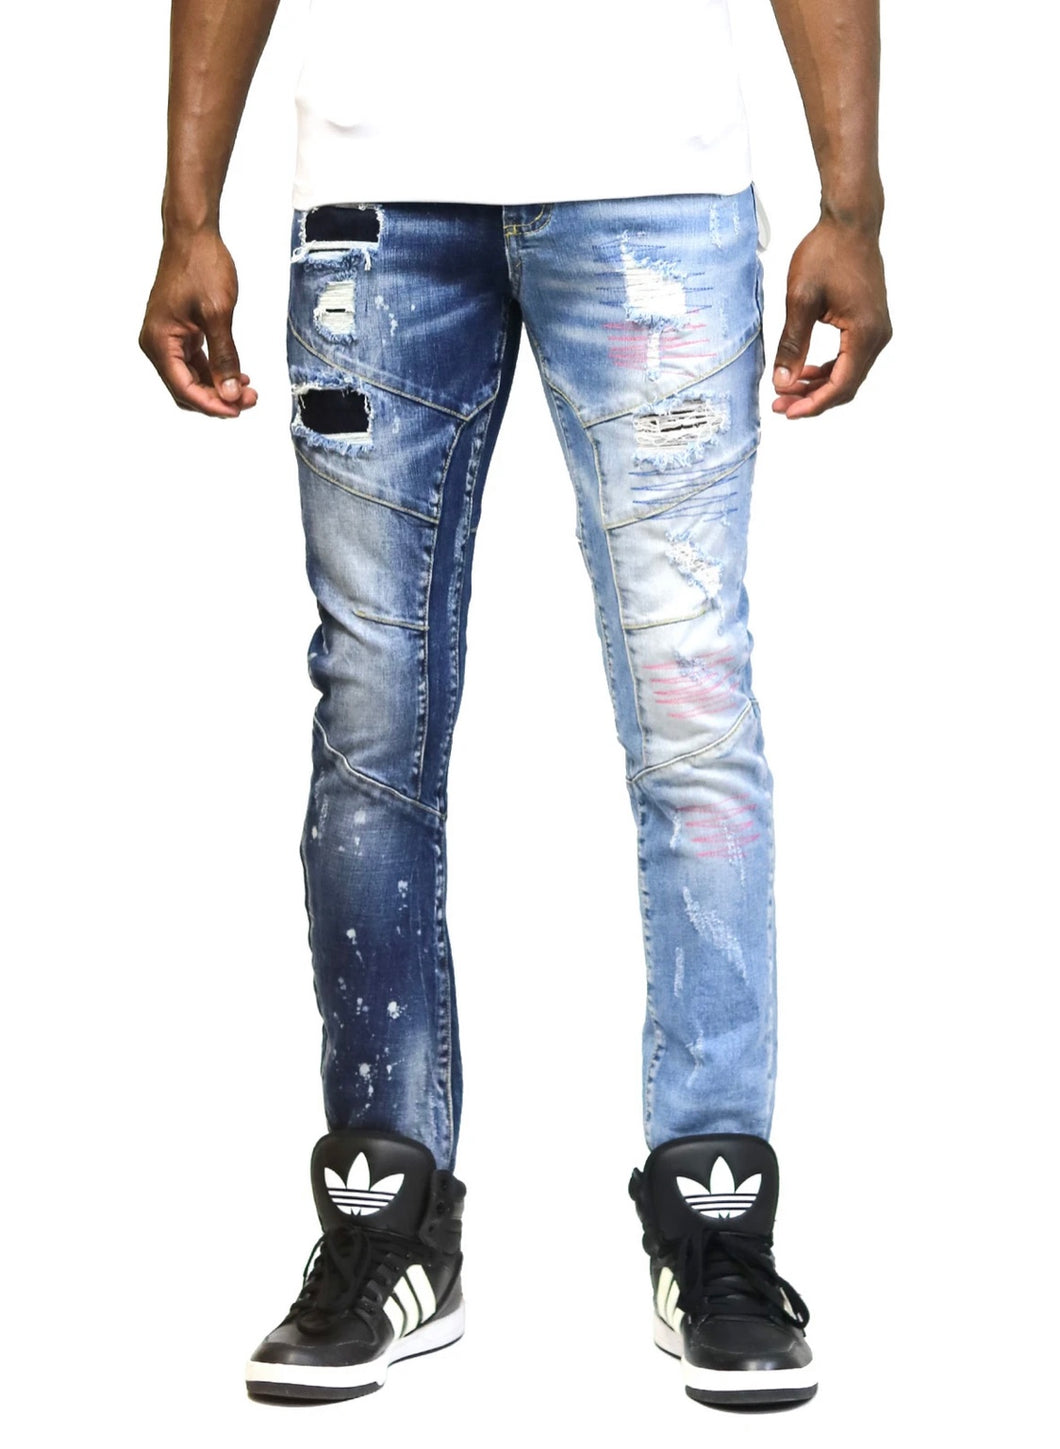 Larkspur Limited Premium Washed Half and Half Skinny Denim Pants.